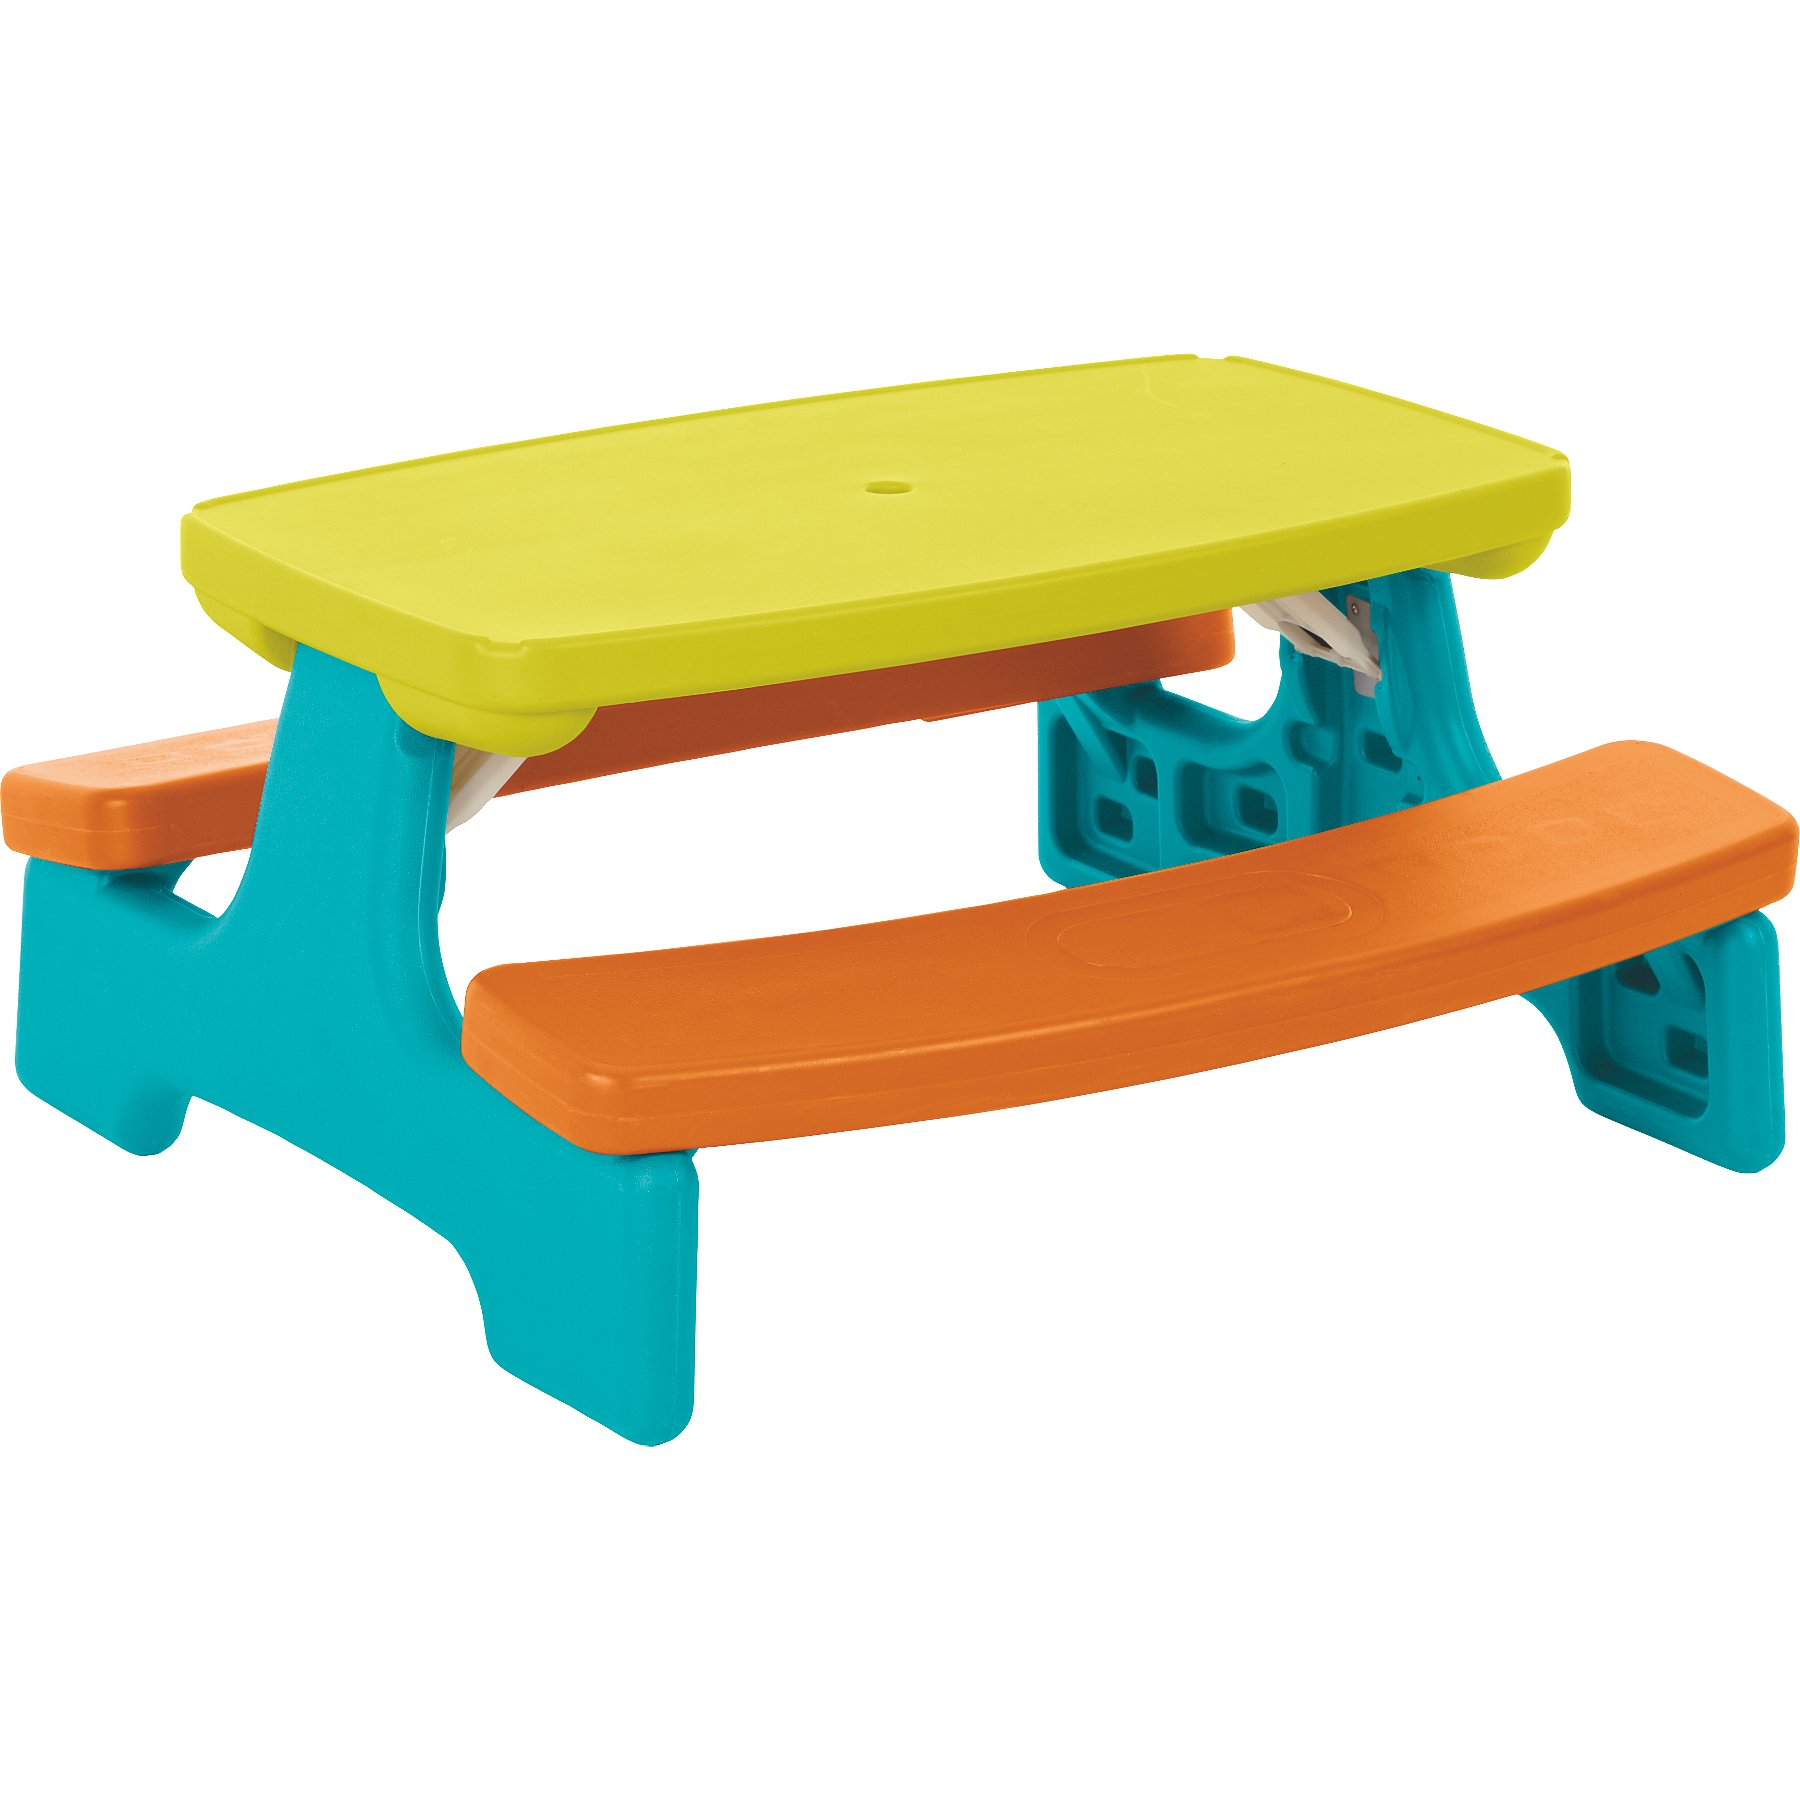 Pleasing Kids Large Folding Garden Table And Bench Download Free Architecture Designs Viewormadebymaigaardcom